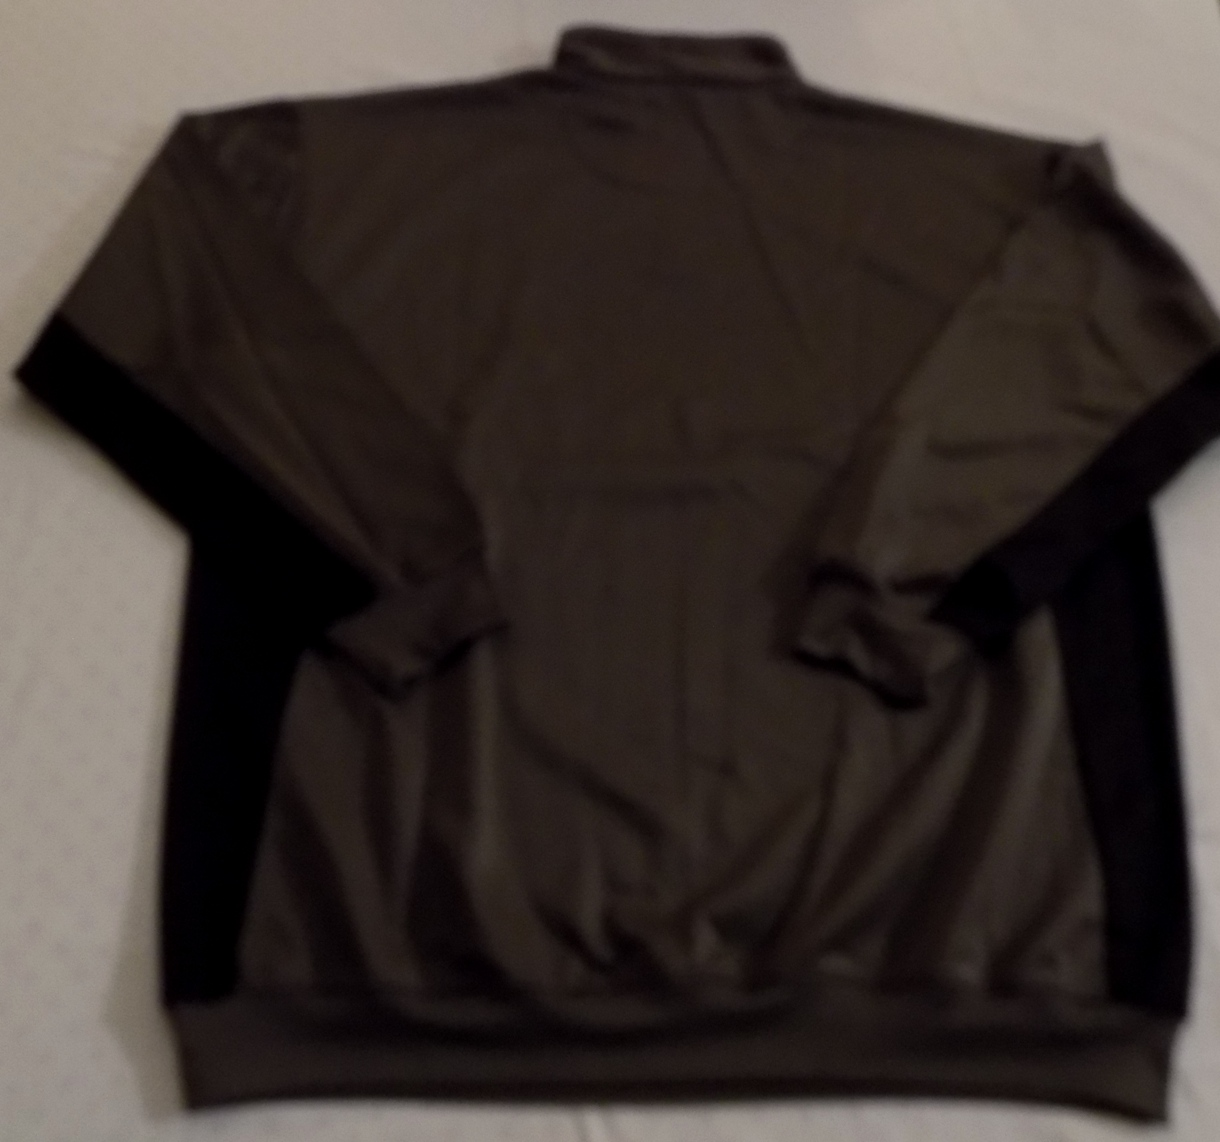 Details about Cincinnati Bengals Quarter Zip Long Sleeve Pullover 2XL  Charcoal Embroidered NFL